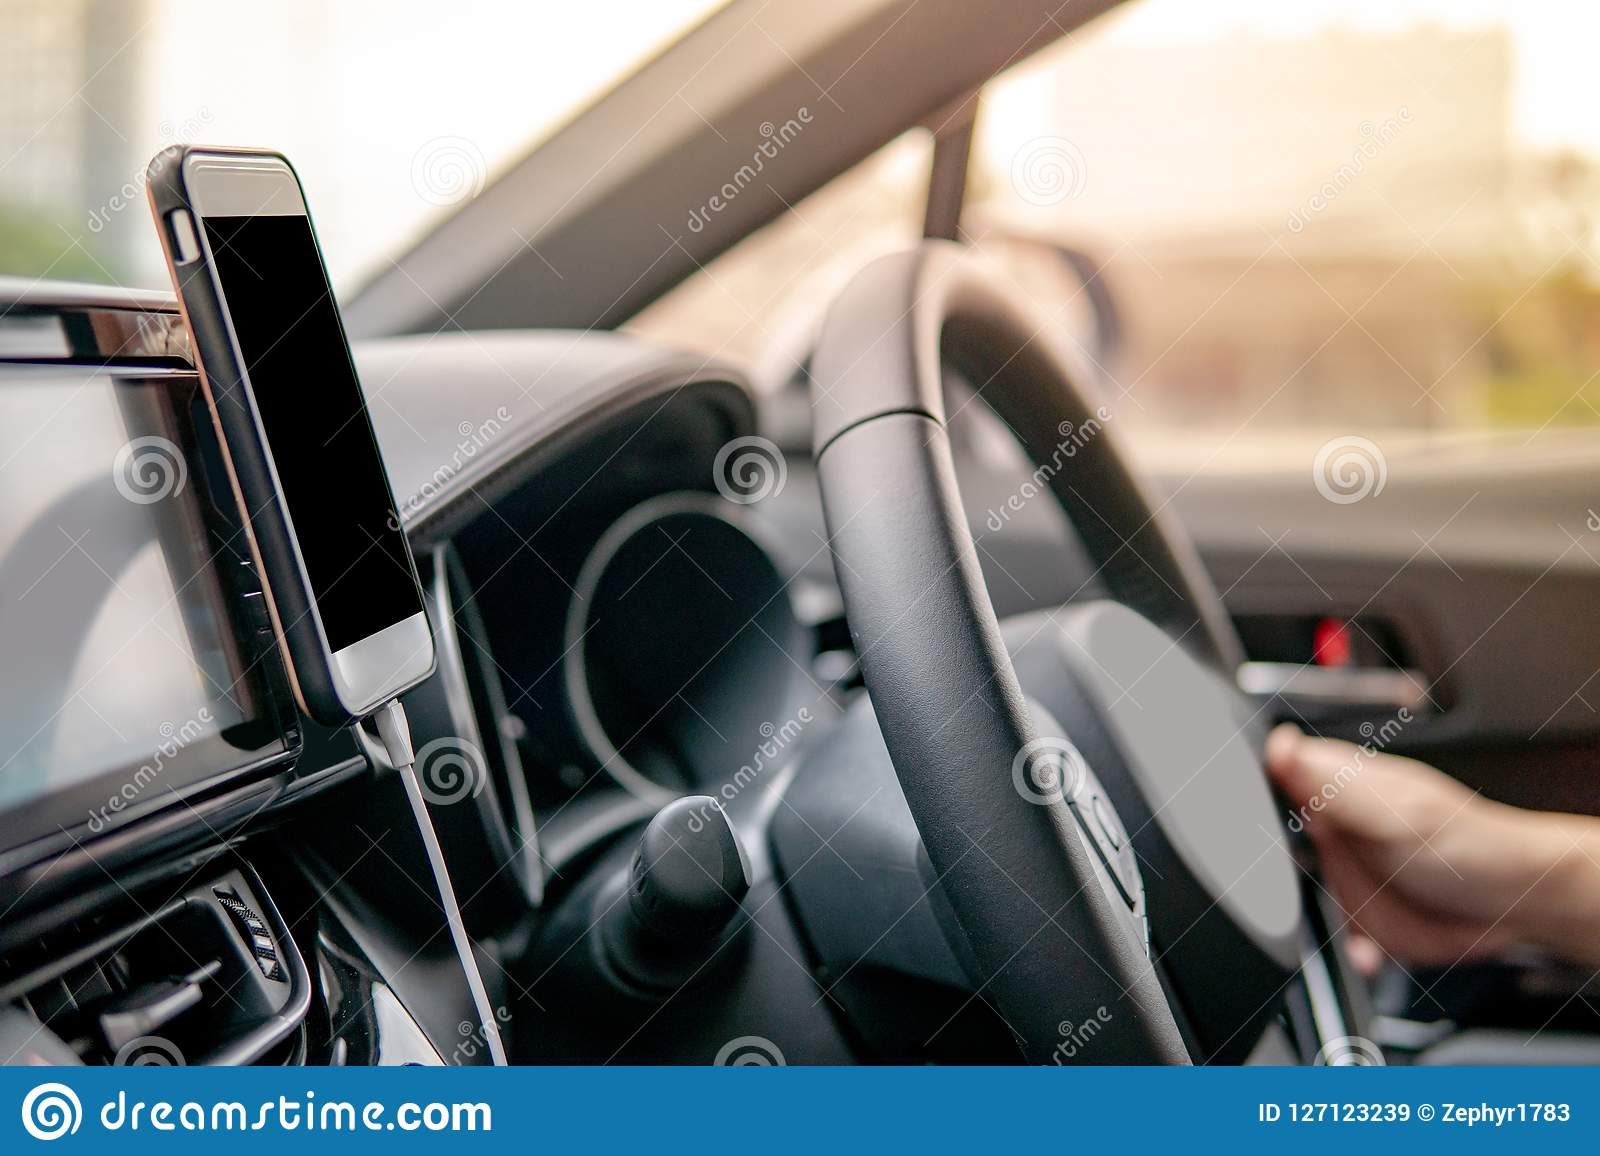 Driver Using Mobile App For GPS Navigation Stock Image